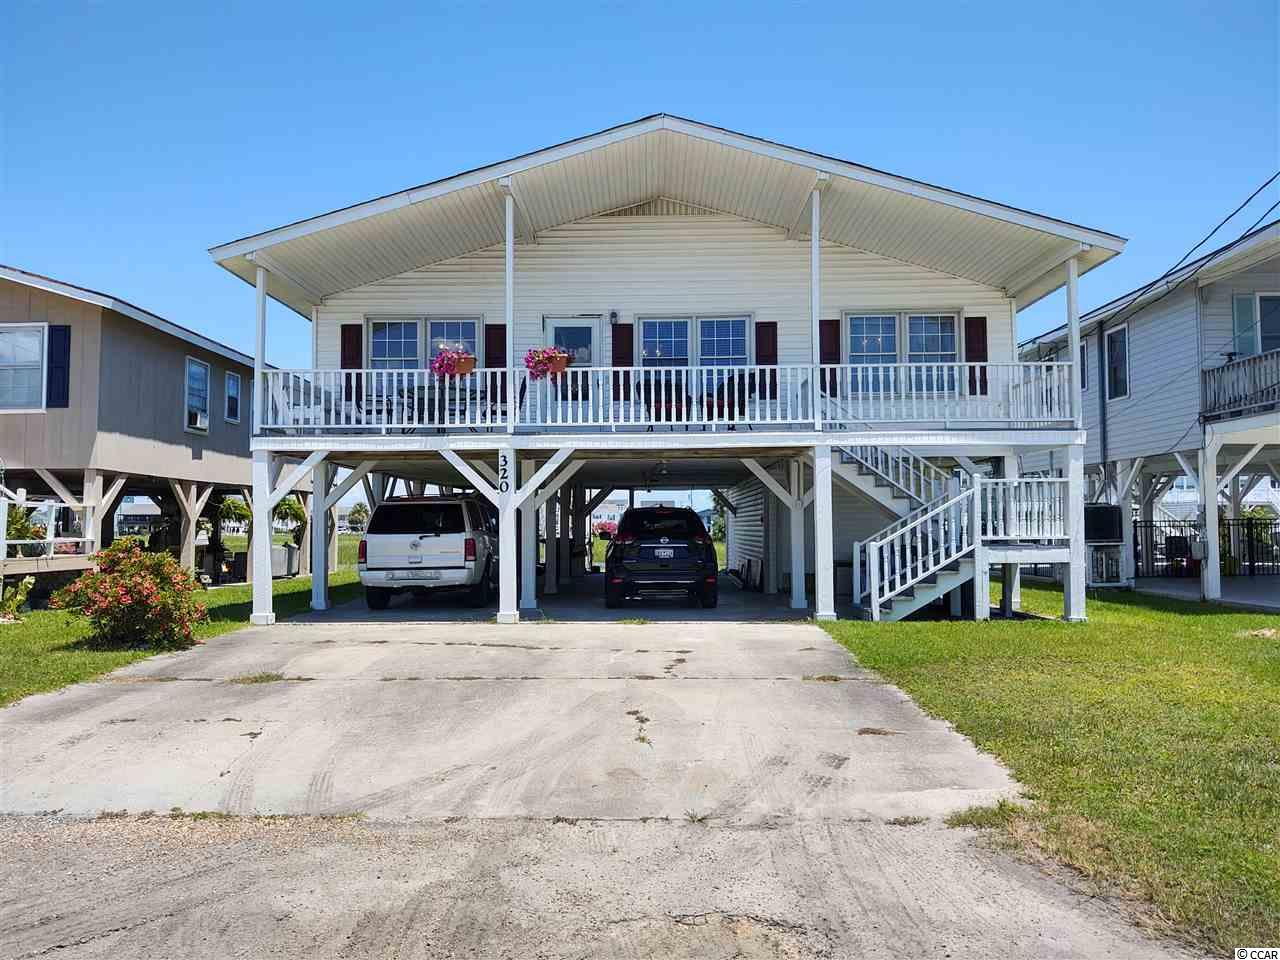 Very desirable 4 bedroom, 2 and one half bath house on the channel in Cherry Grove.  Features a Carolina Room with unlimited views of the marsh.   New roof in 2018. Sold furnished minus a few items. All new appliance, except the microwave which is approximately 2 years old.  The washer and dryer are two years old.  Vinyl flooring is all new. In great condition.  The back porch overlooks breathtaking views of the Cherry Grove marsh. Wonderful area downstairs for storage and workshop. Square footage is approximate and not guaranteed. Buyers responsible for verification.